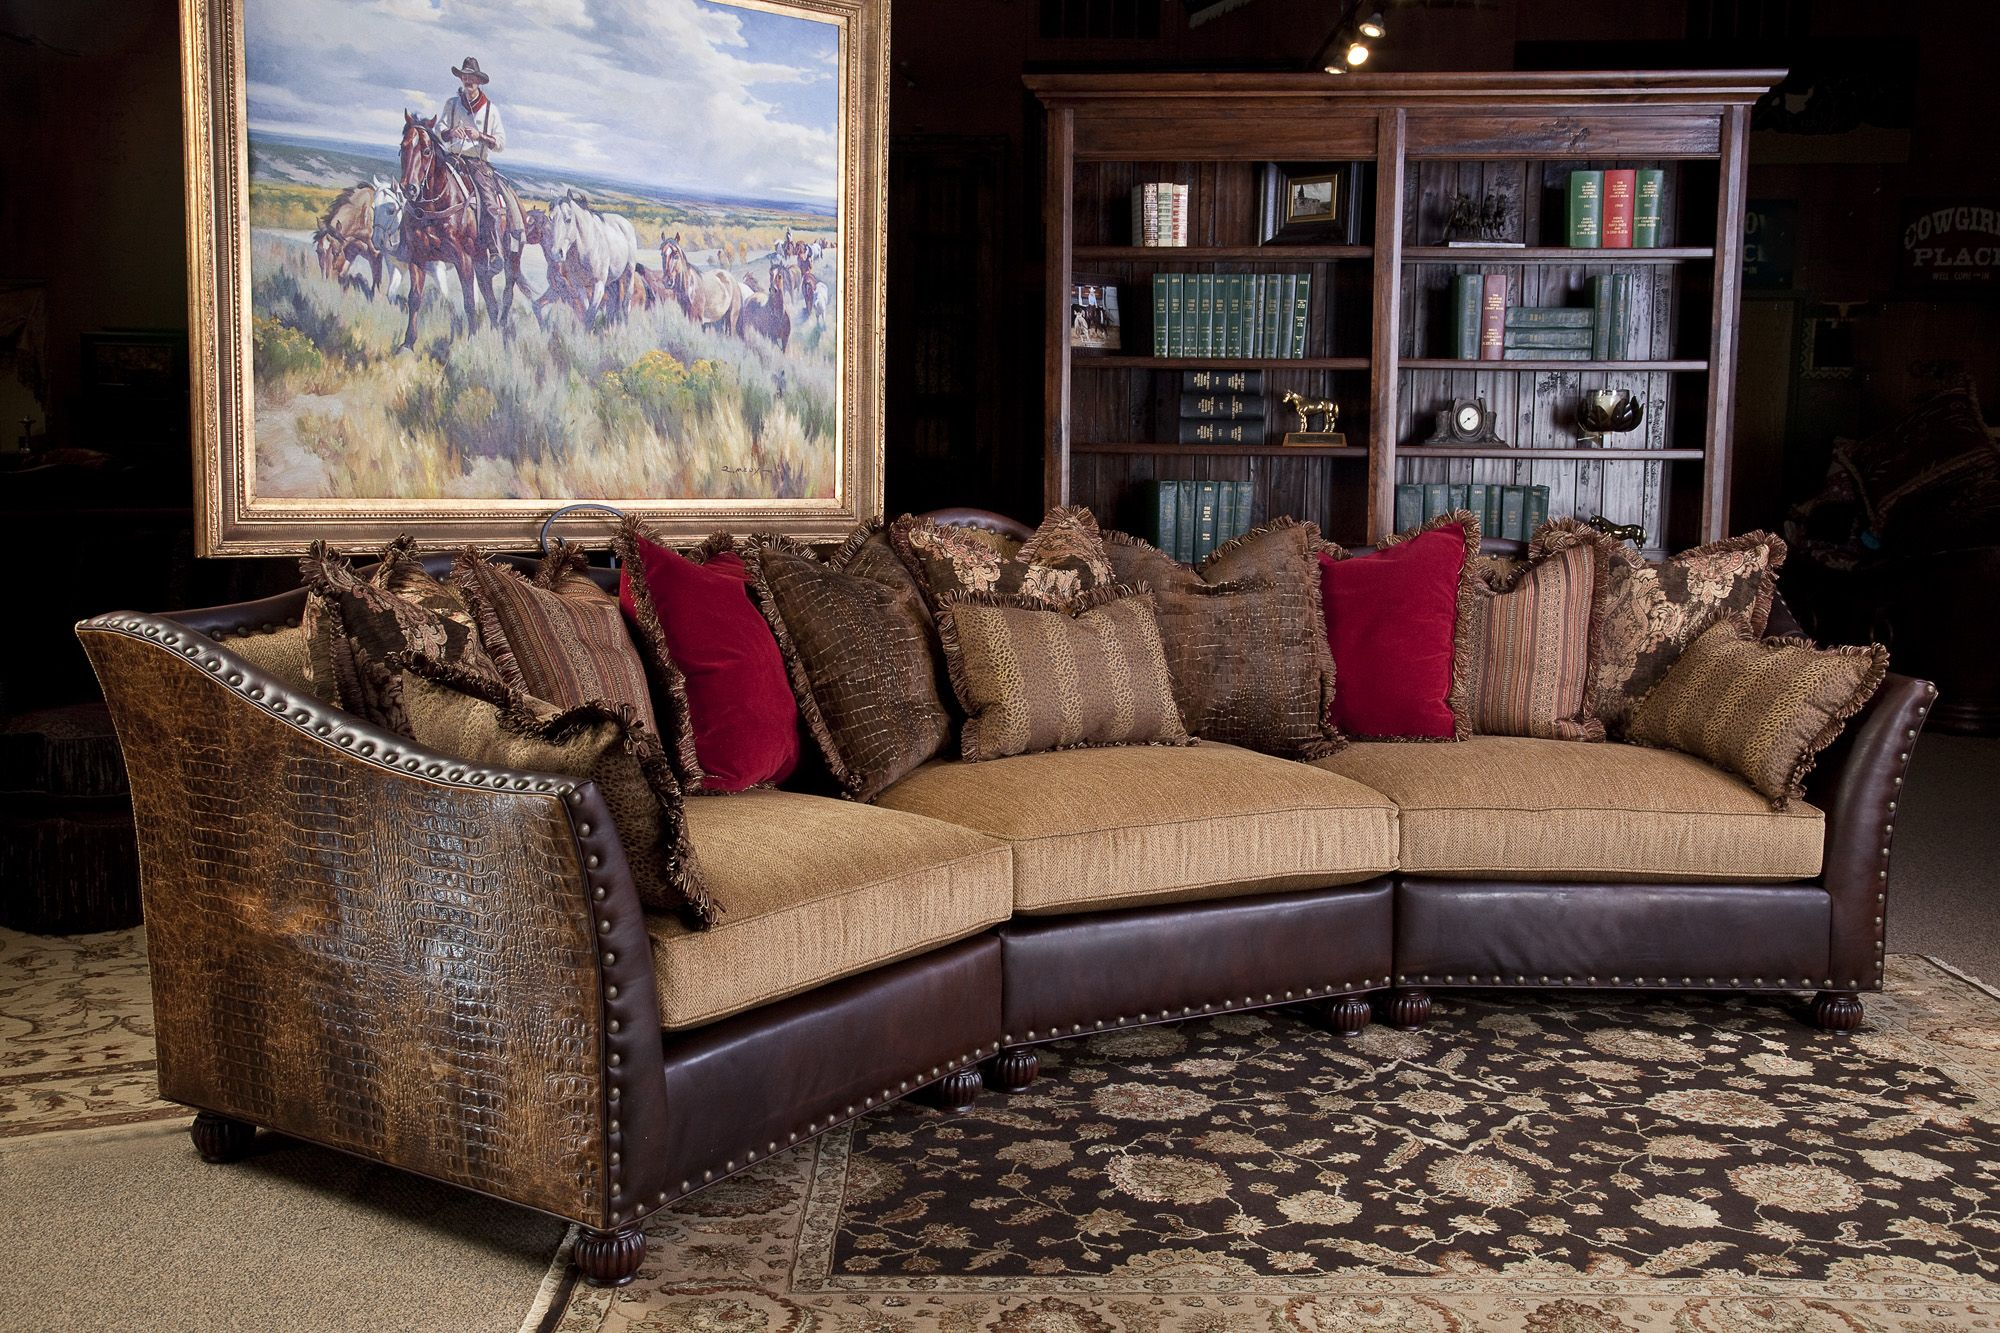 mixing leather sofa fabric chairs cama carrefour 89 euros jlb design sectional western art emboss and westerns